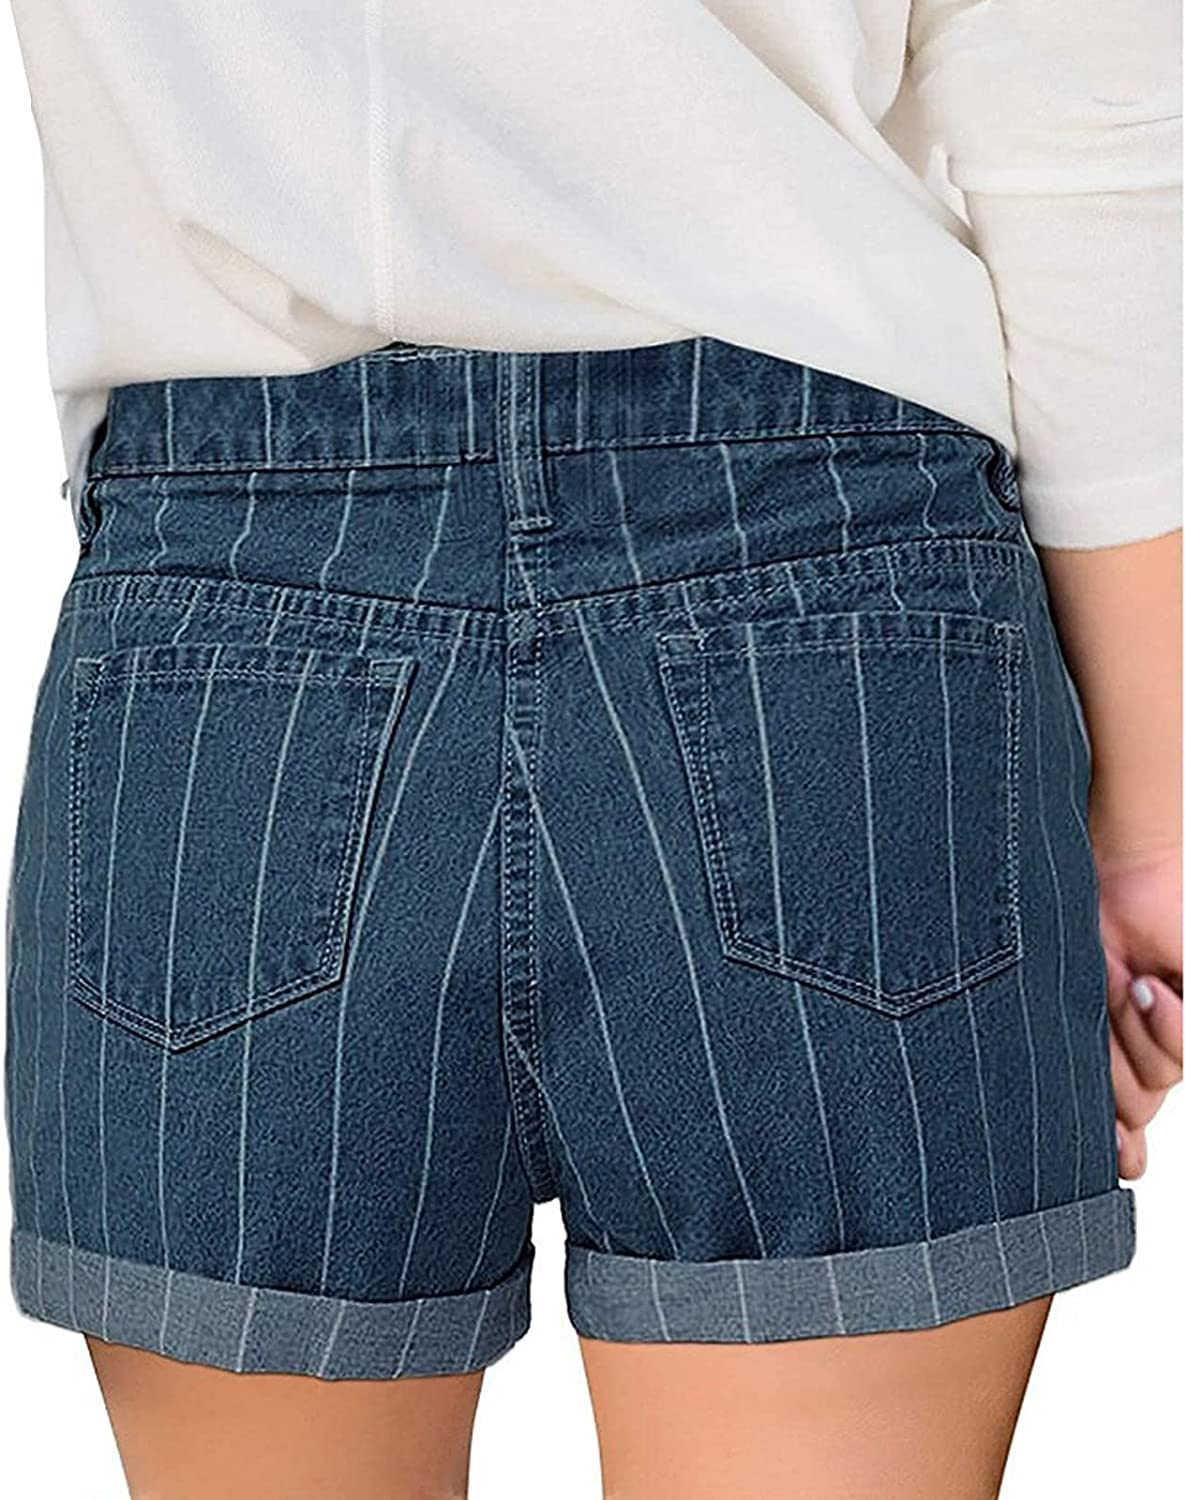 Jean Shorts for Women Plus Size Distressed Ripped Denim Shorts Stretchy Frayed Raw Hem Hot Short Jeans with Pockets